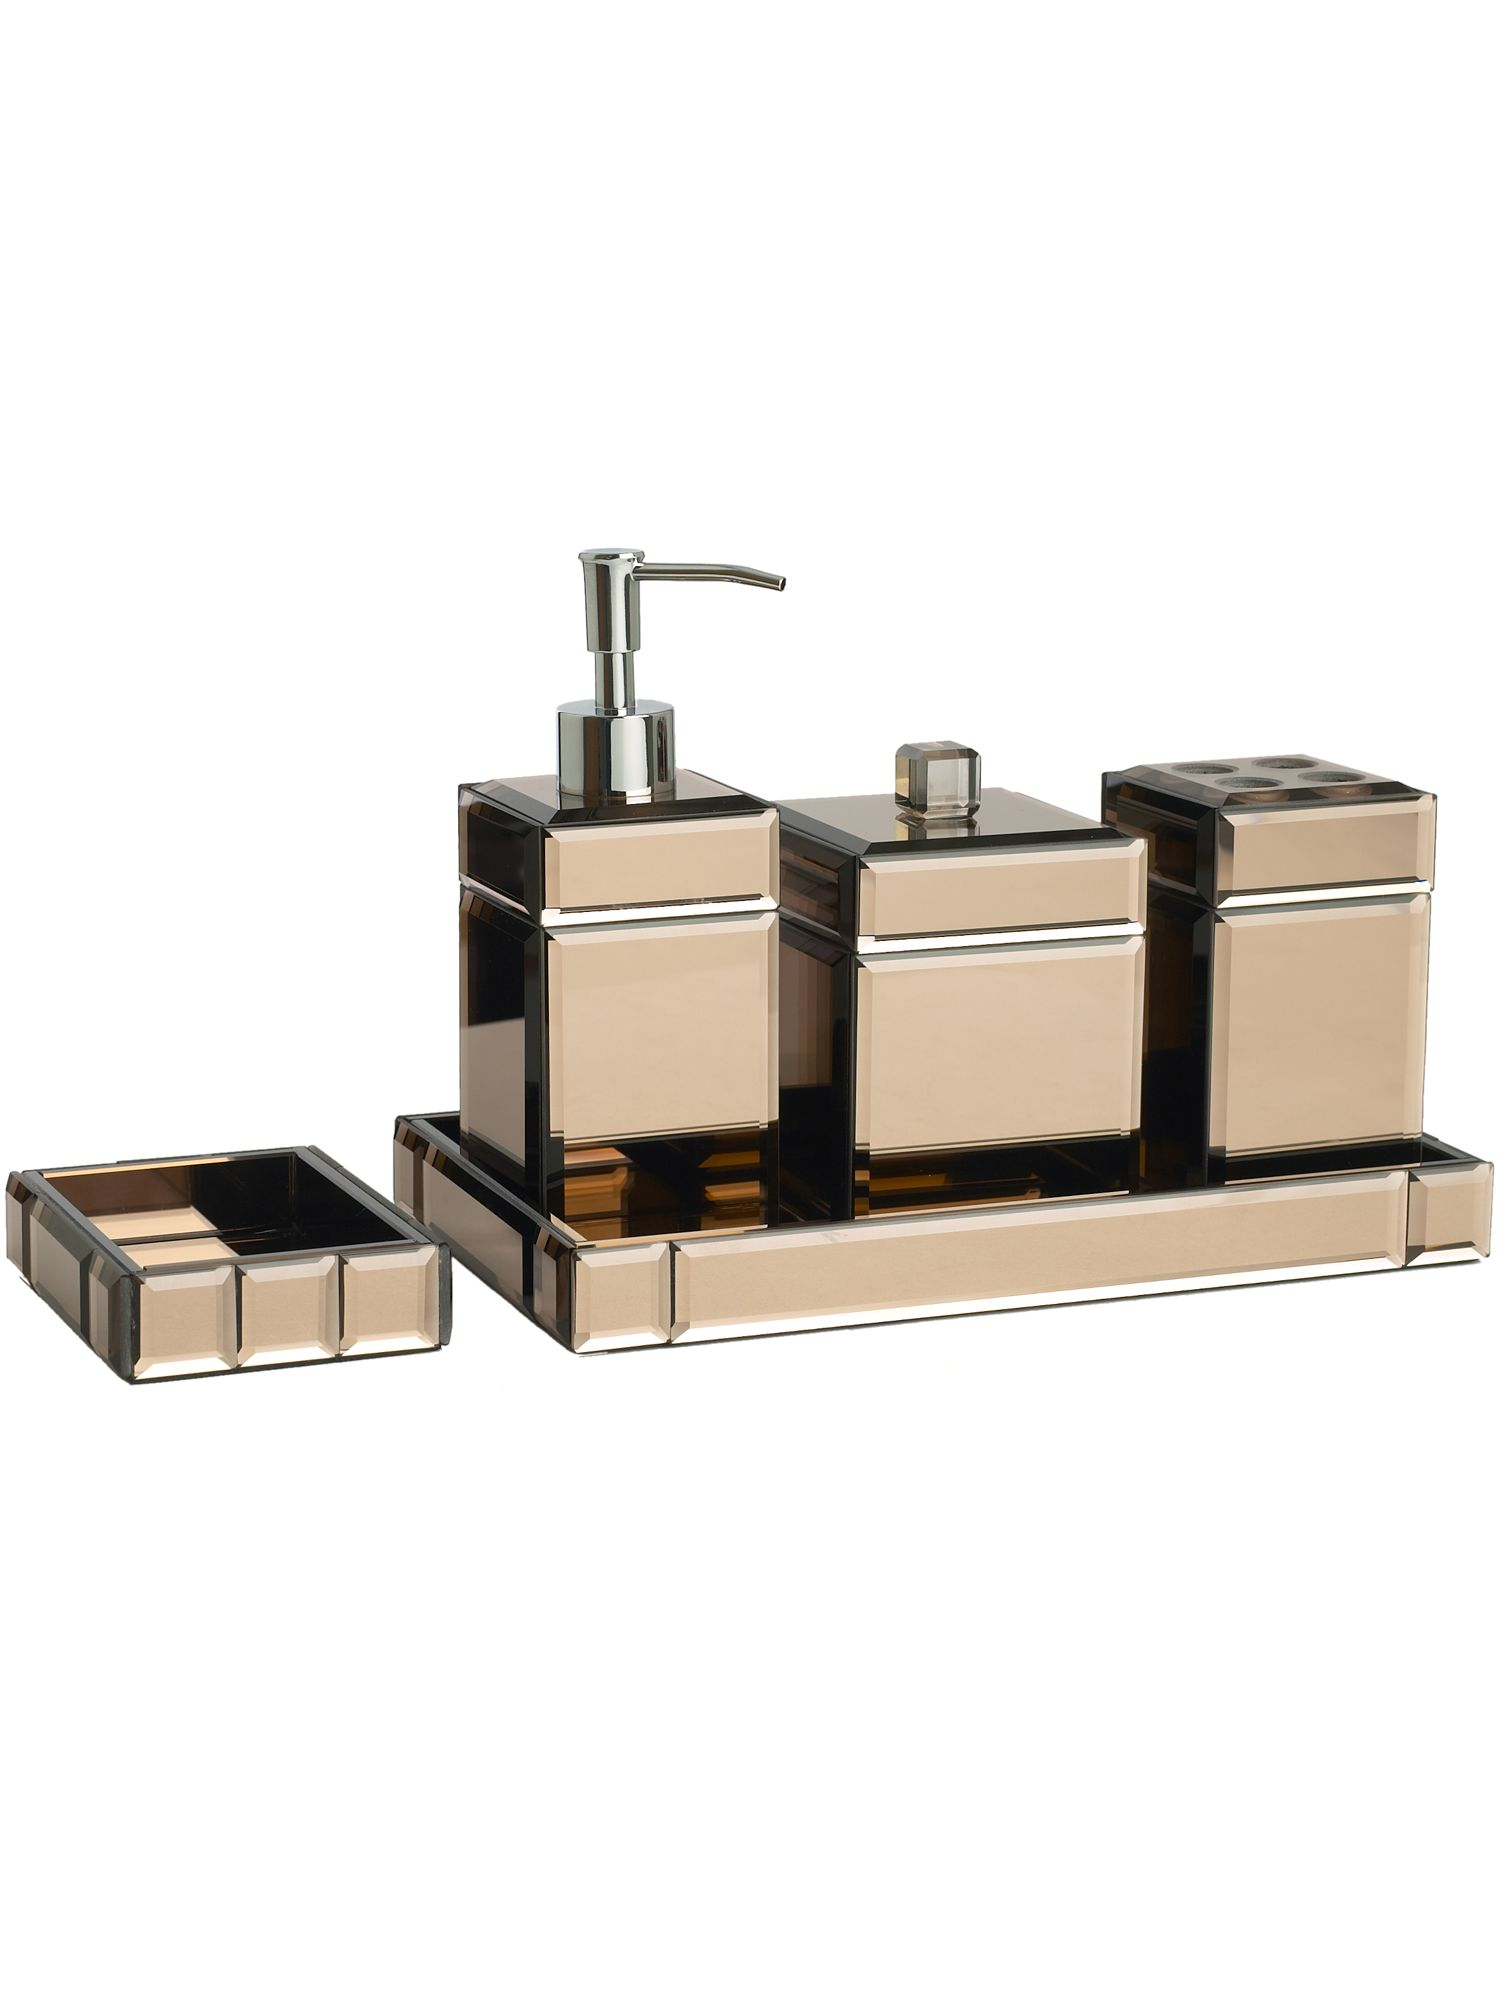 Pied a terre brown mirrored soap dish review compare for Mirrored bathroom accessories